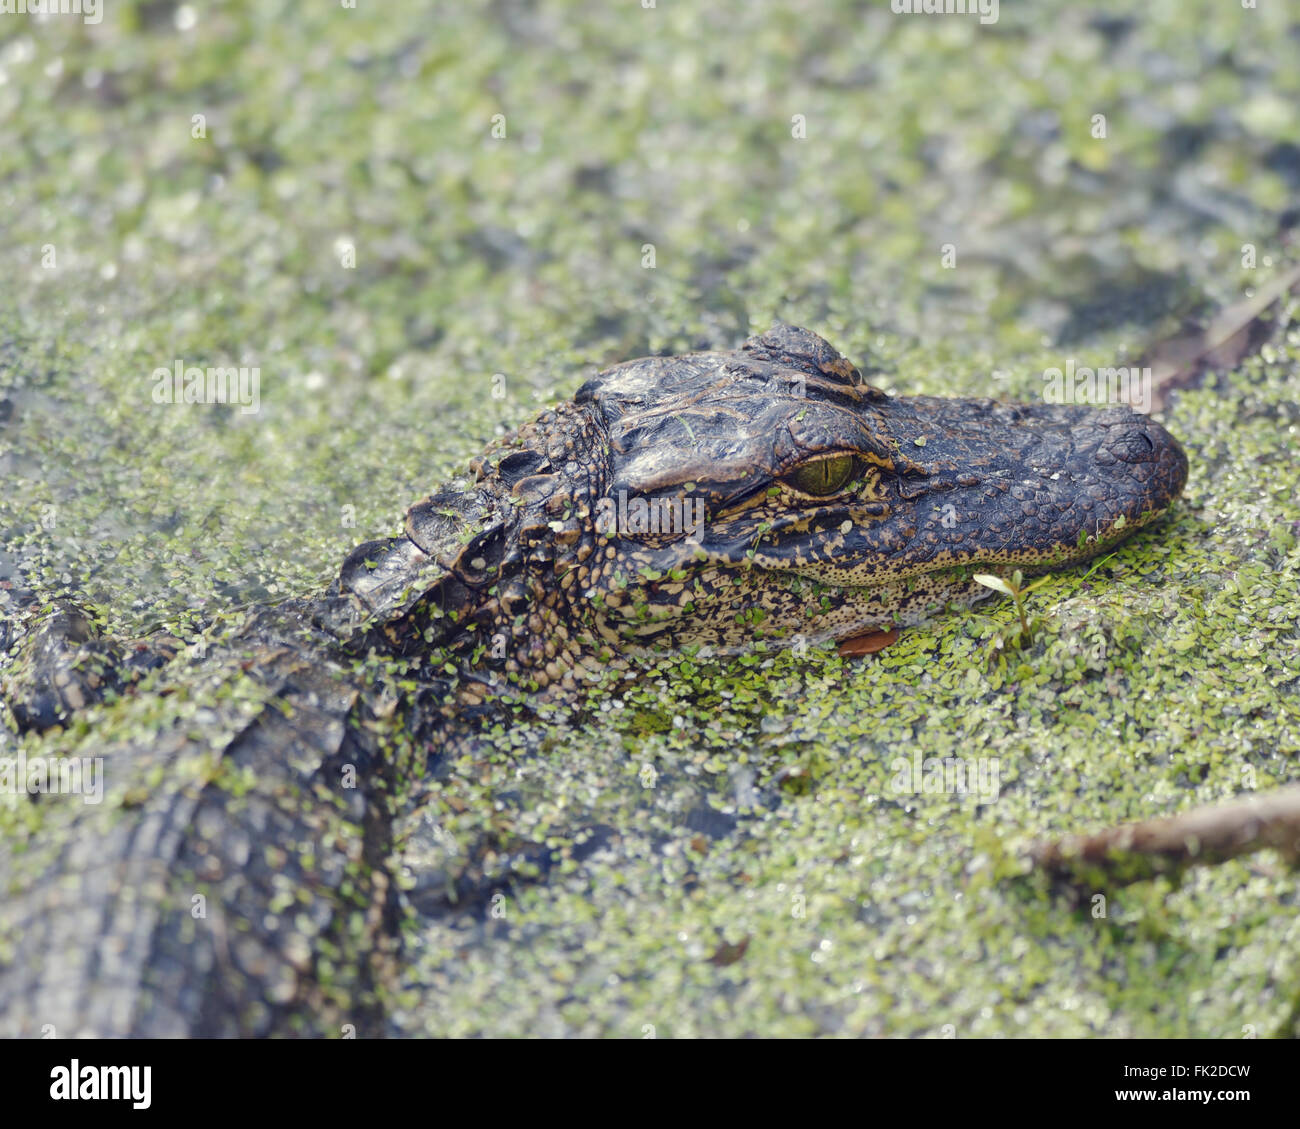 Young American Alligator in Florida Wetlands - Stock Image